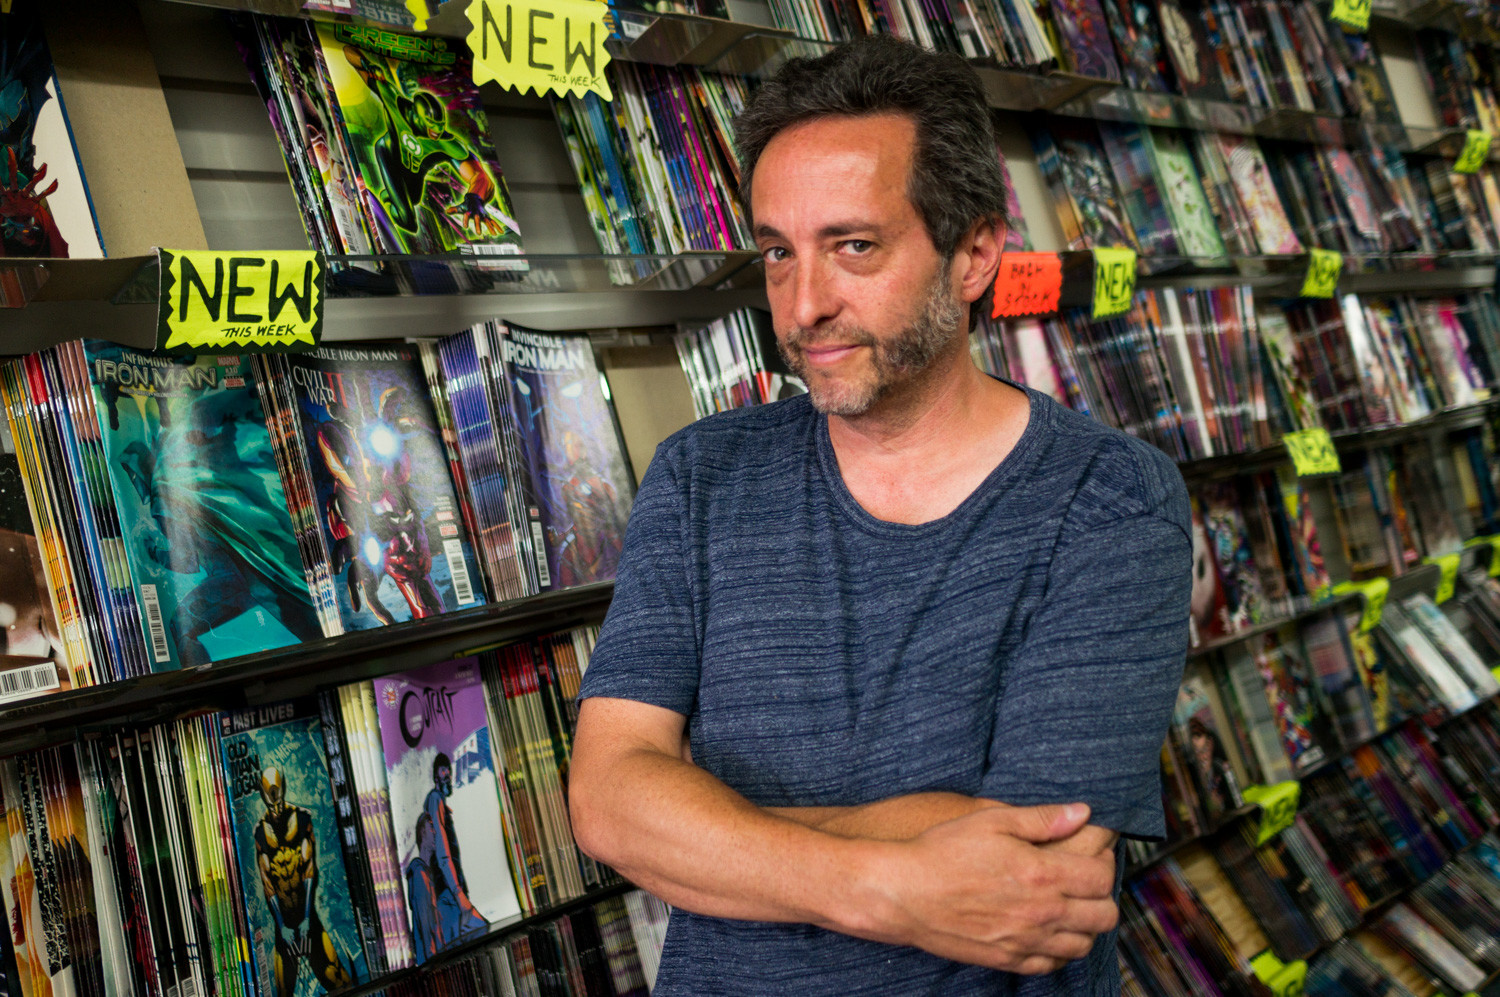 A longtime collector of comic books, Neil Shatzoff opened Magnum Comics and Cards in 1991, but in recent years, interest in comic books has waned. The shop will close at the end of the year.